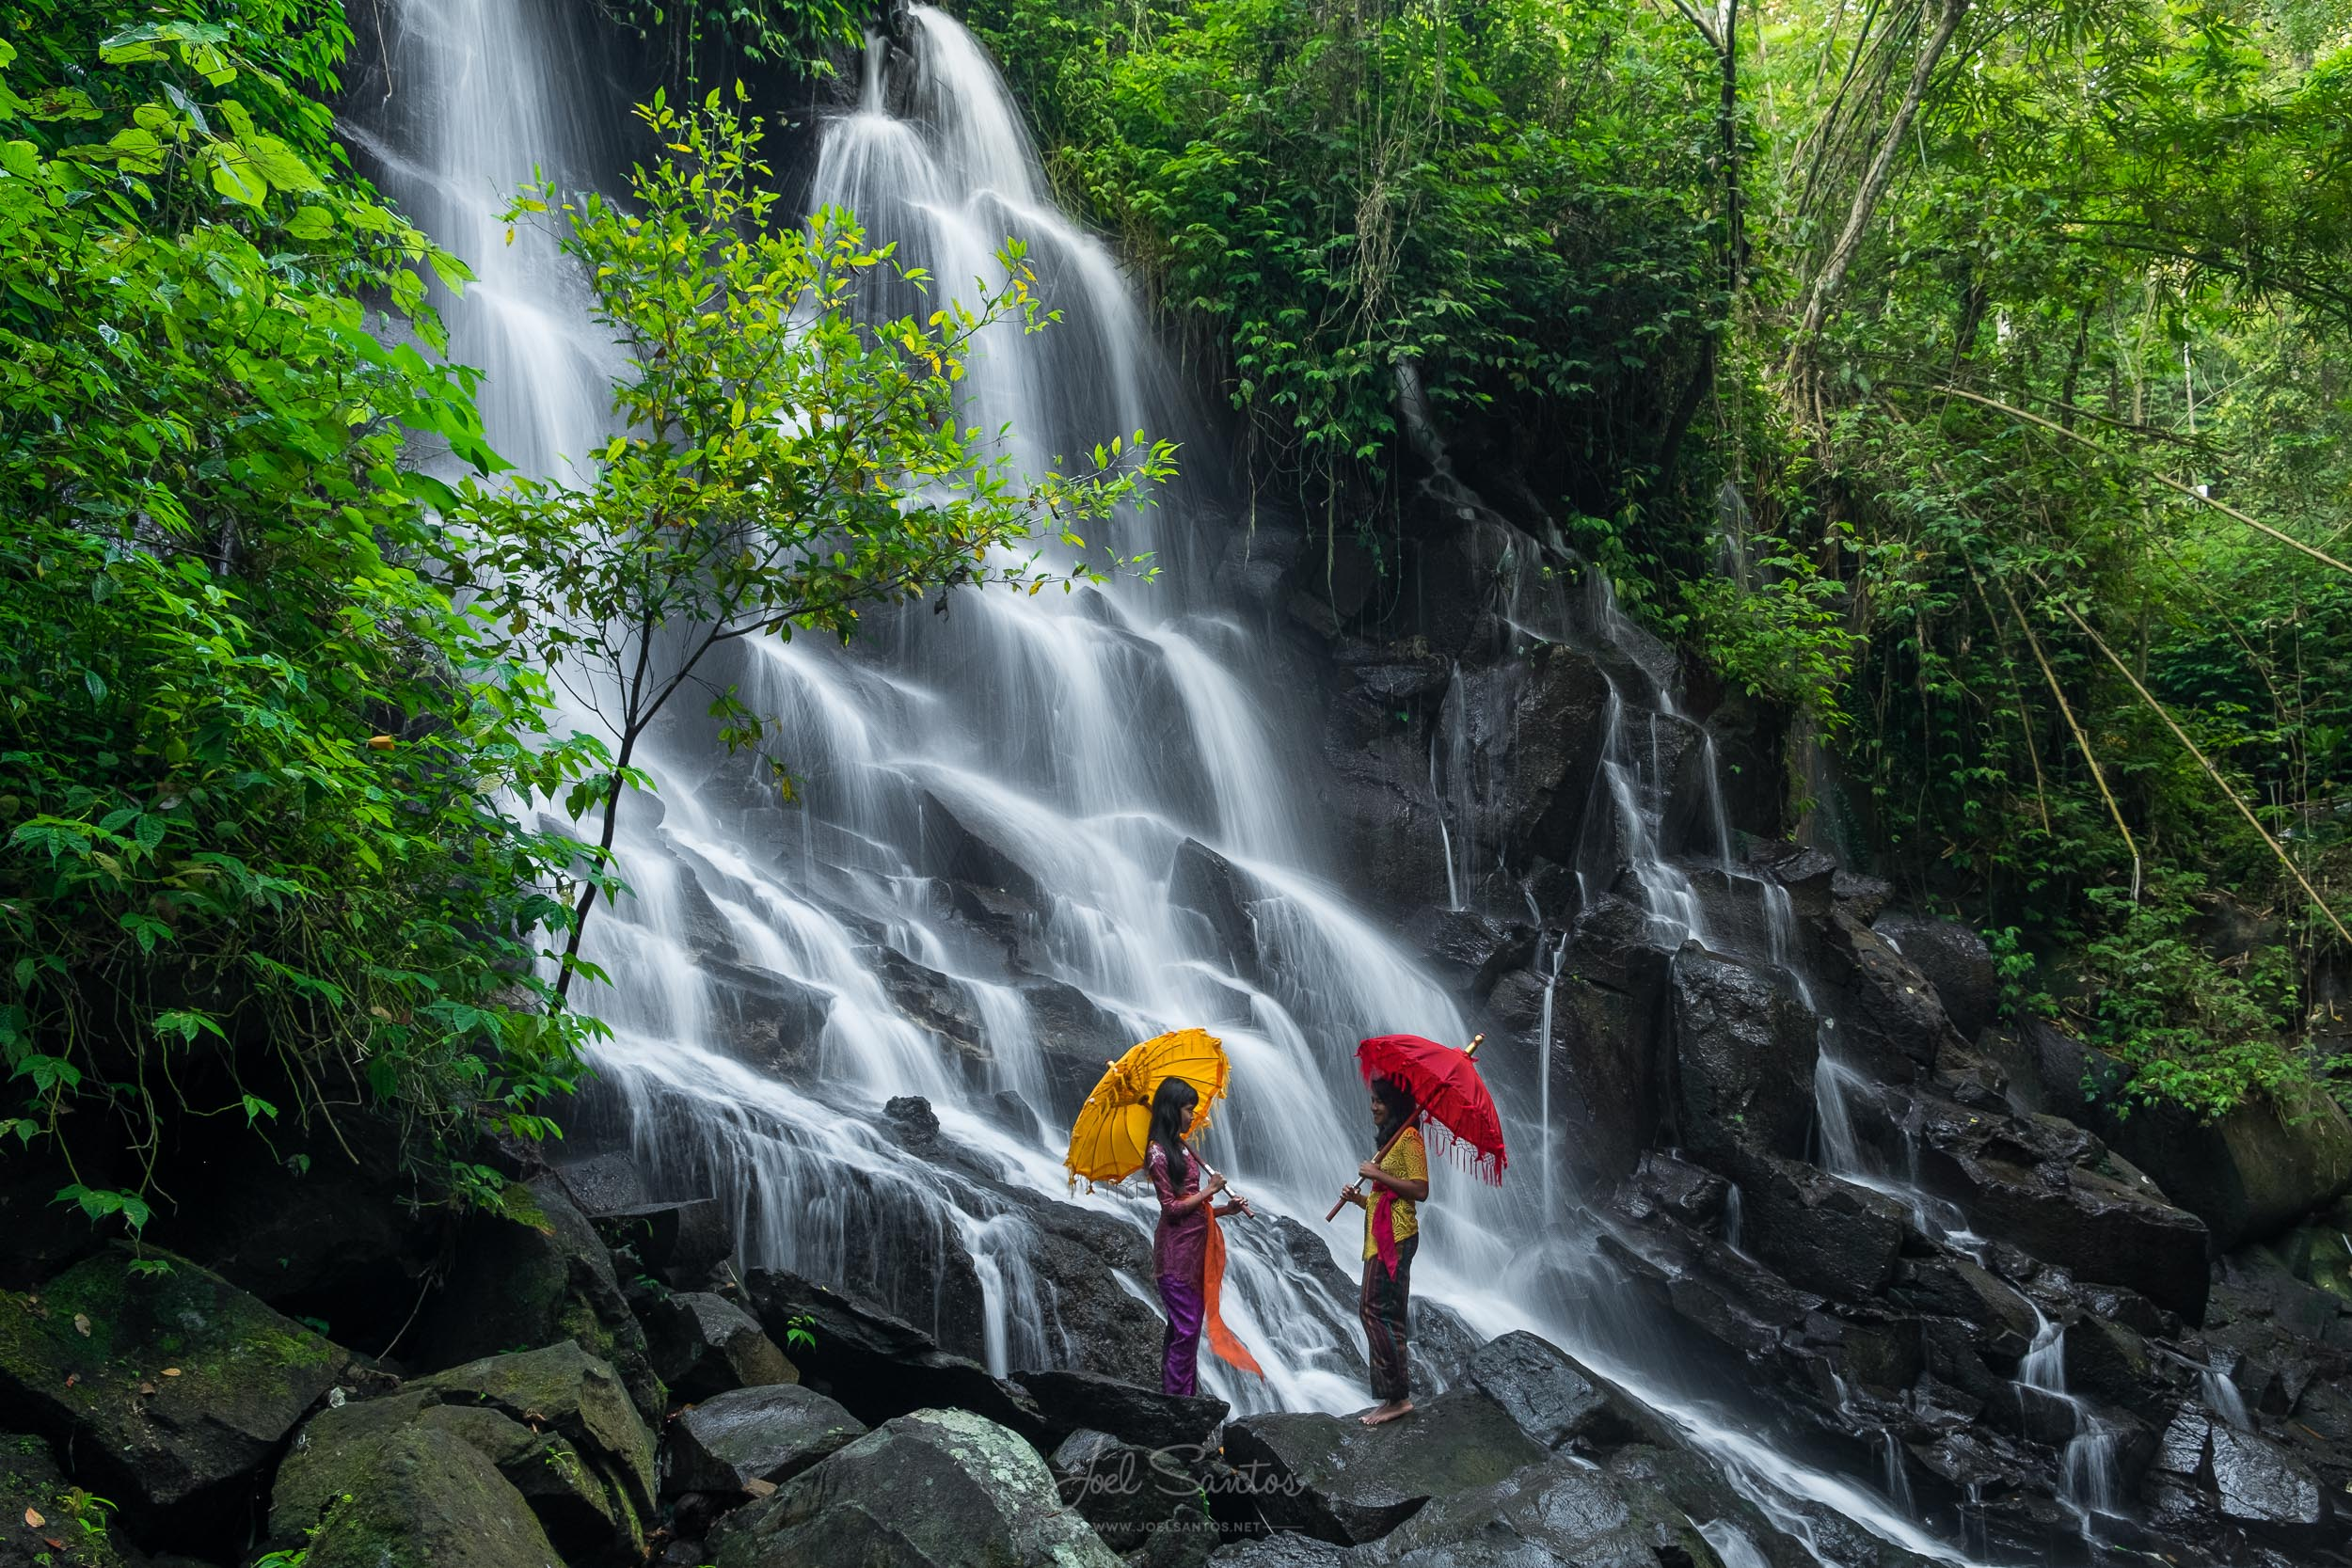 Balinese Girls with traditional umbrella at Waterfall, Bali, Ind